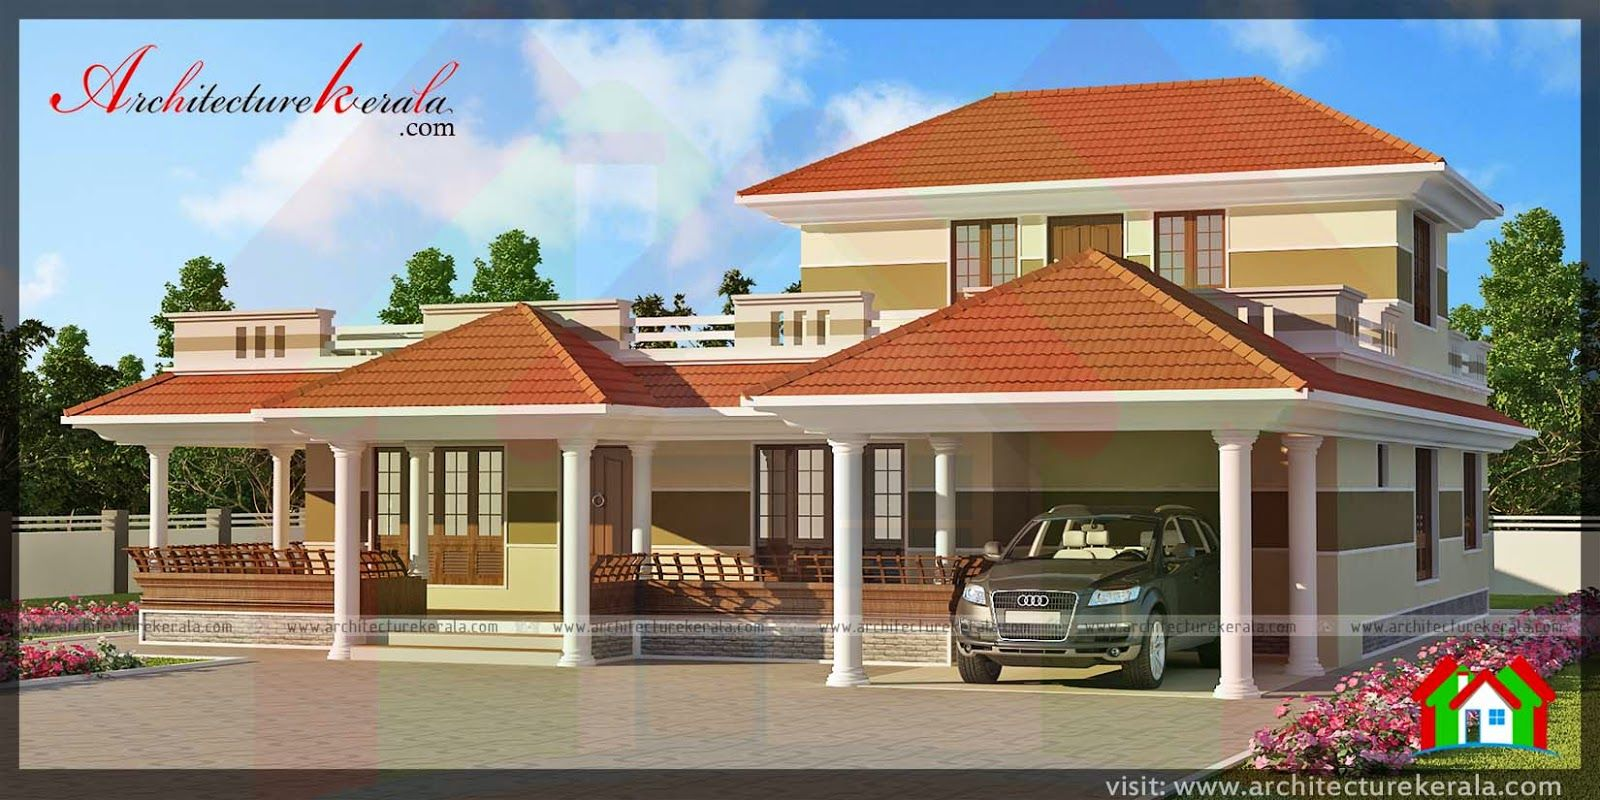 Home interior ideas kerala architecture kerala traditional style house sqft home design designs